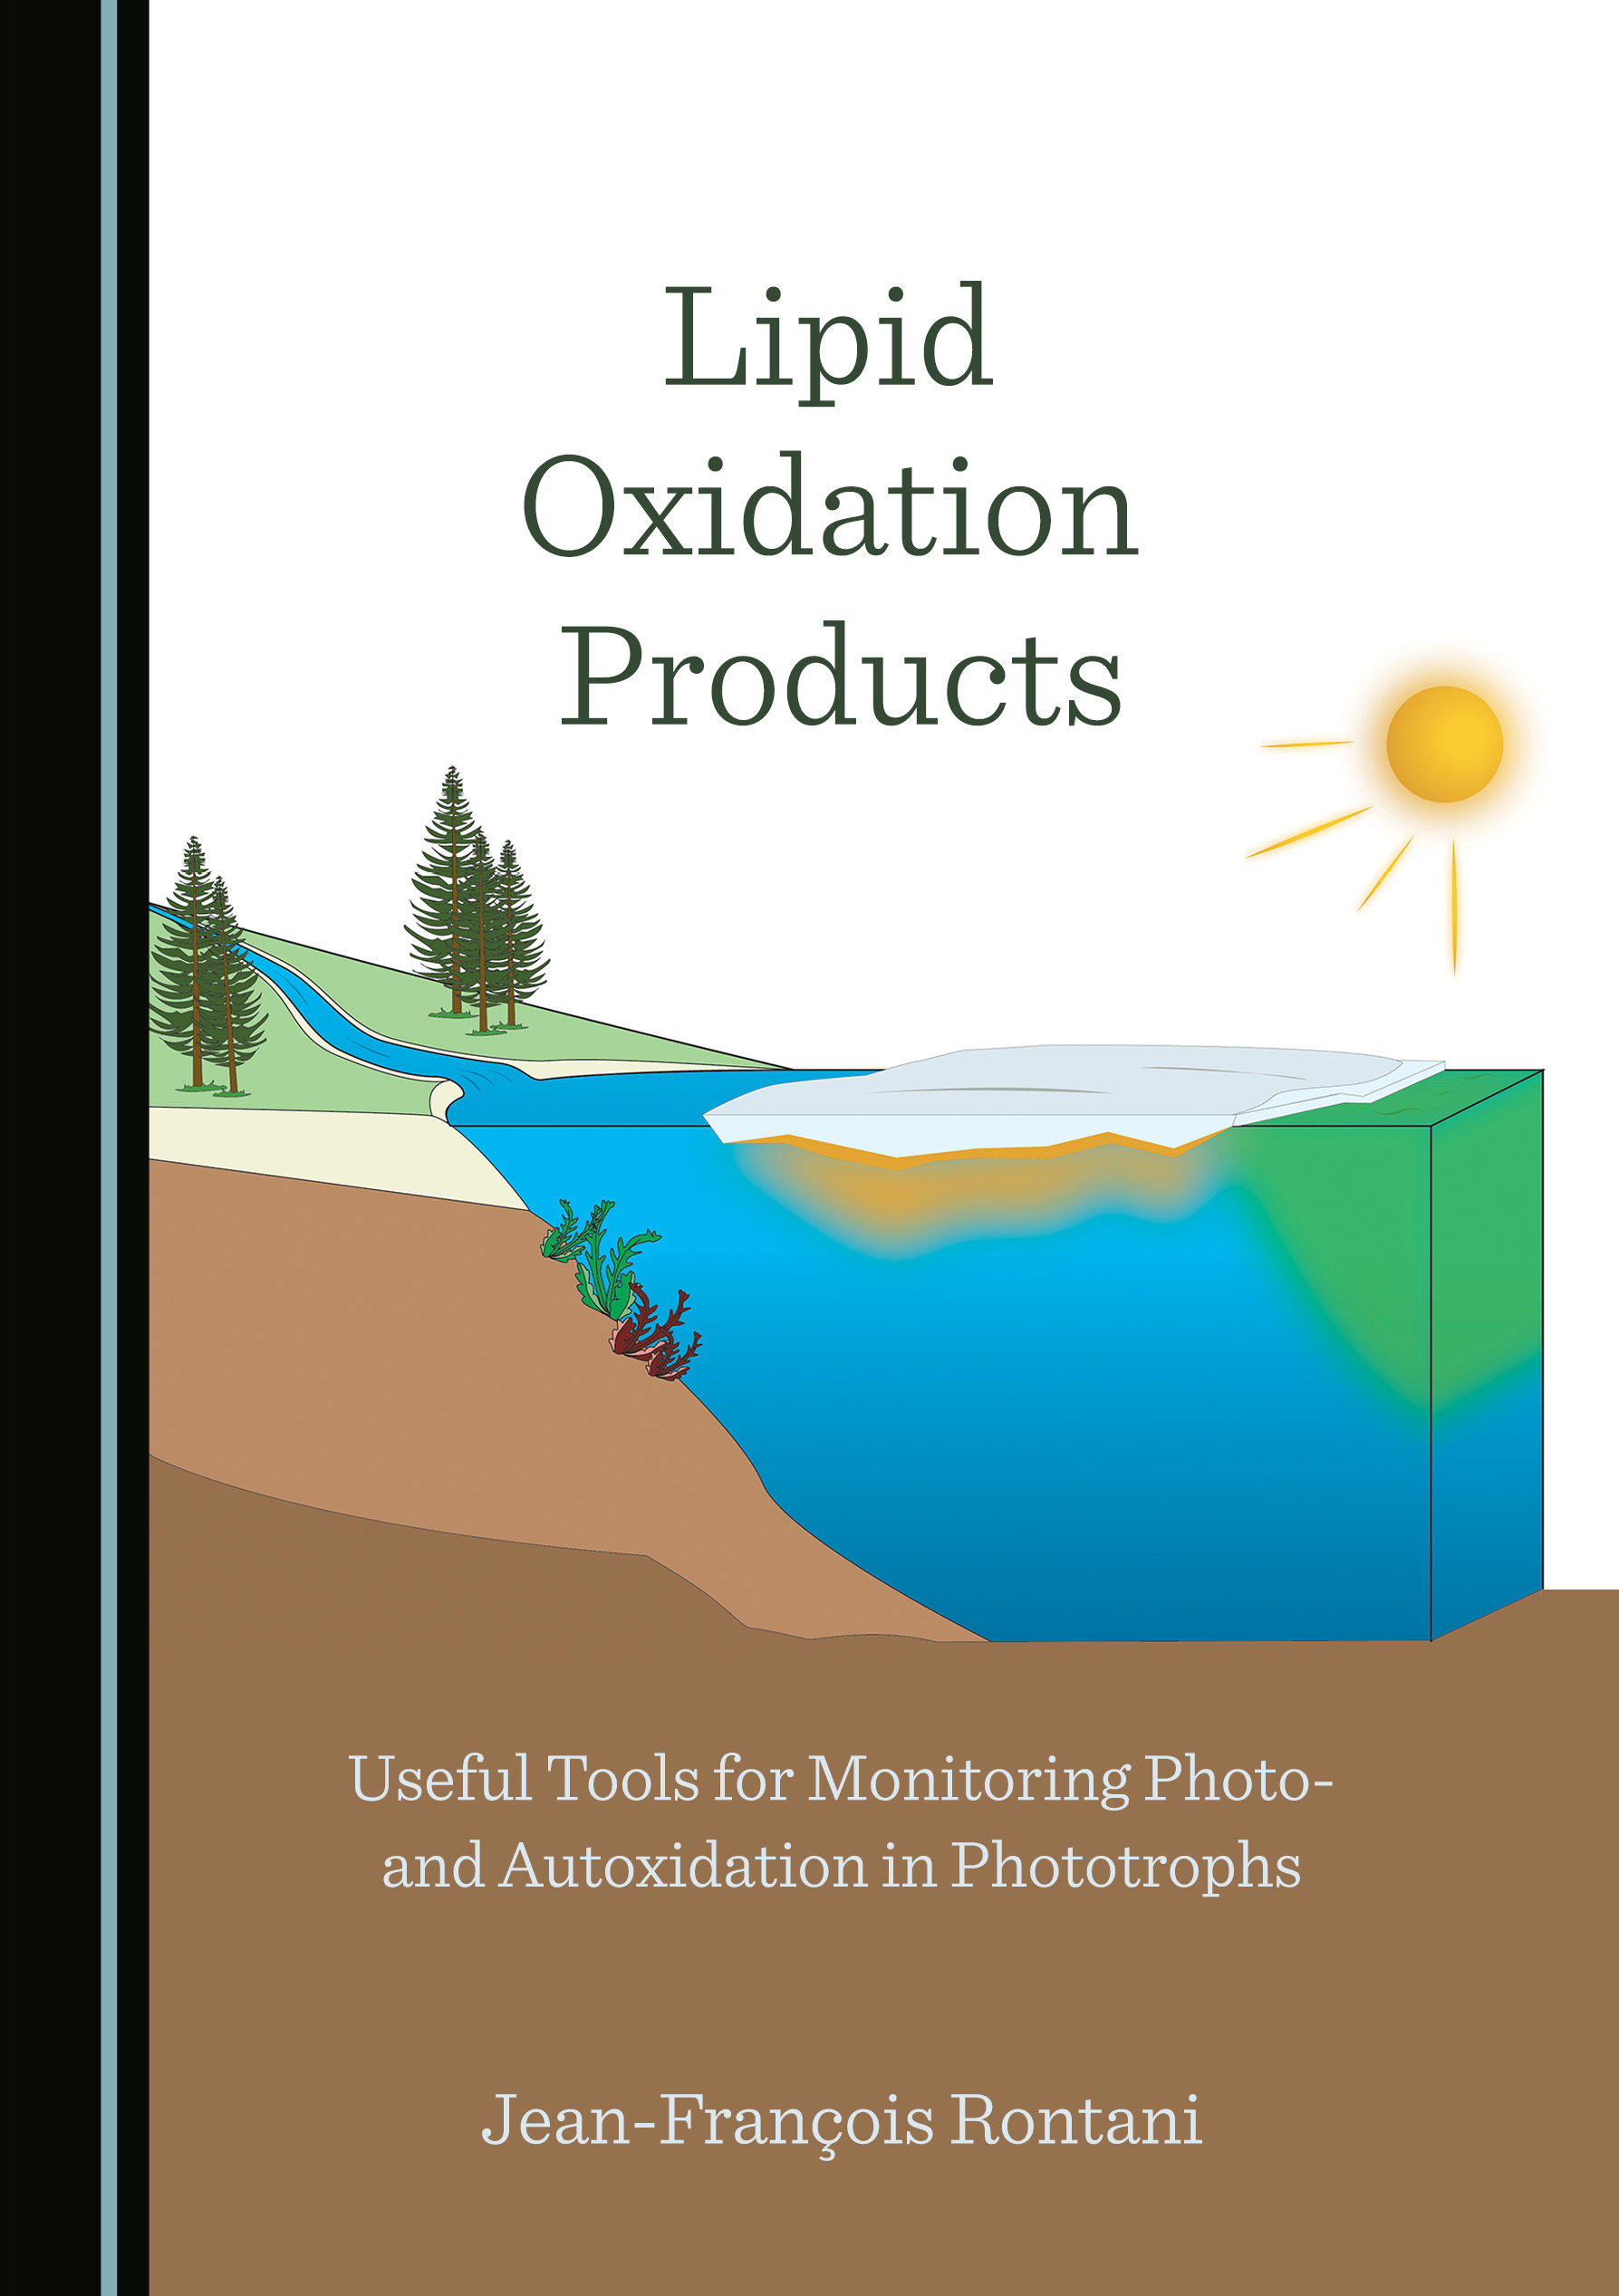 Lipid Oxidation Products: Useful Tools for Monitoring Photo- and Autoxidation in Phototrophs